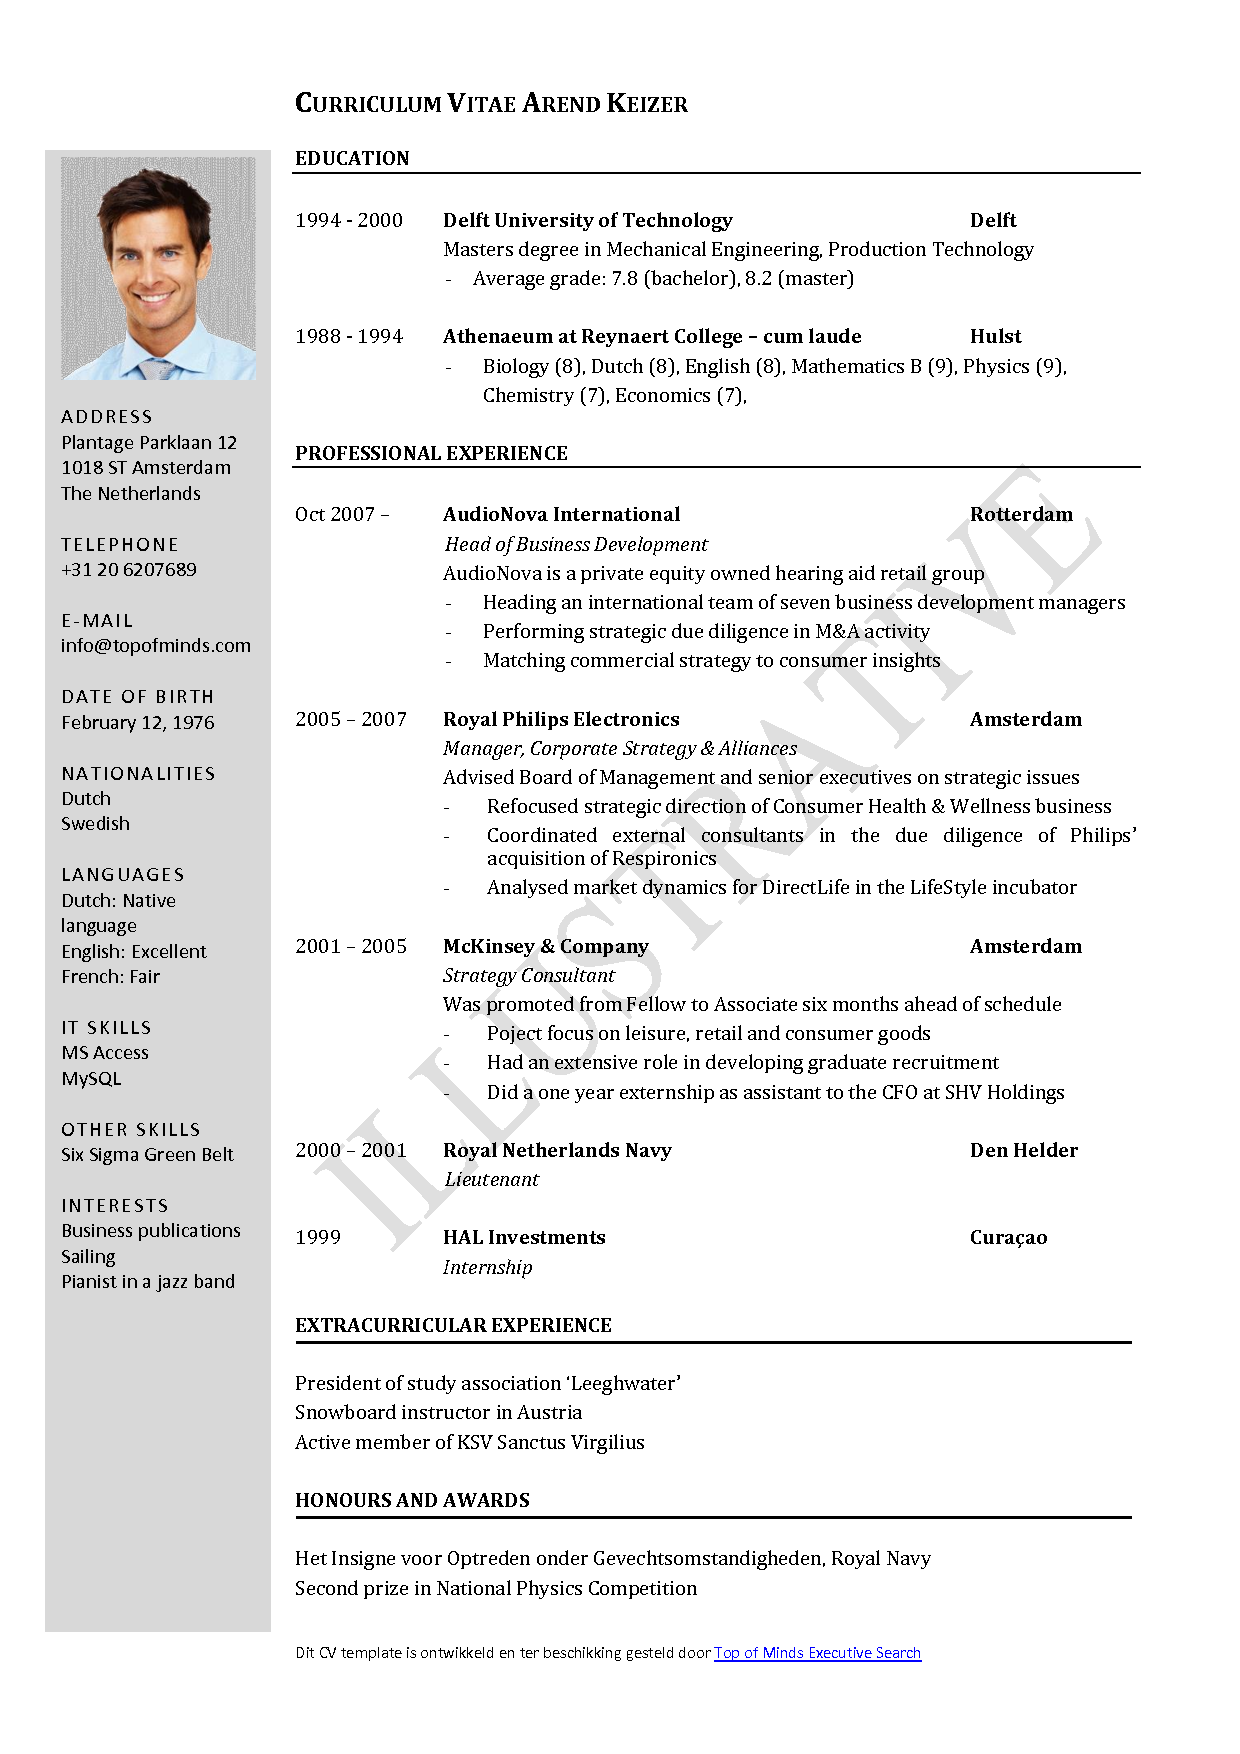 Free curriculum vitae template word download cv template tng free curriculum vitae template word download cv template yelopaper